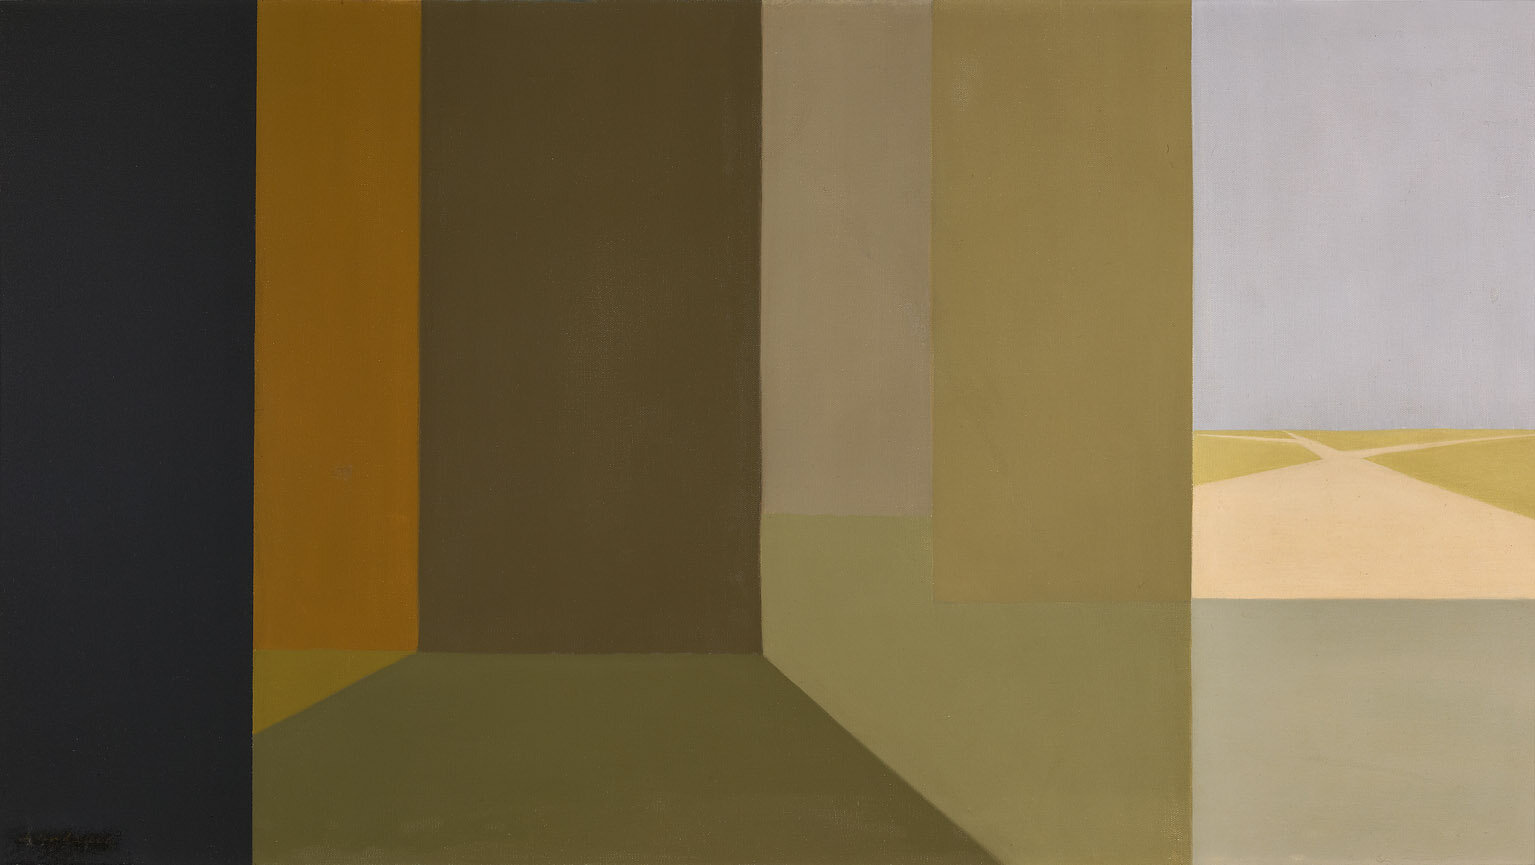 The Road , 1958  oil on canvas 20 x 36 inches; 50.8 x 91.4 centimeters